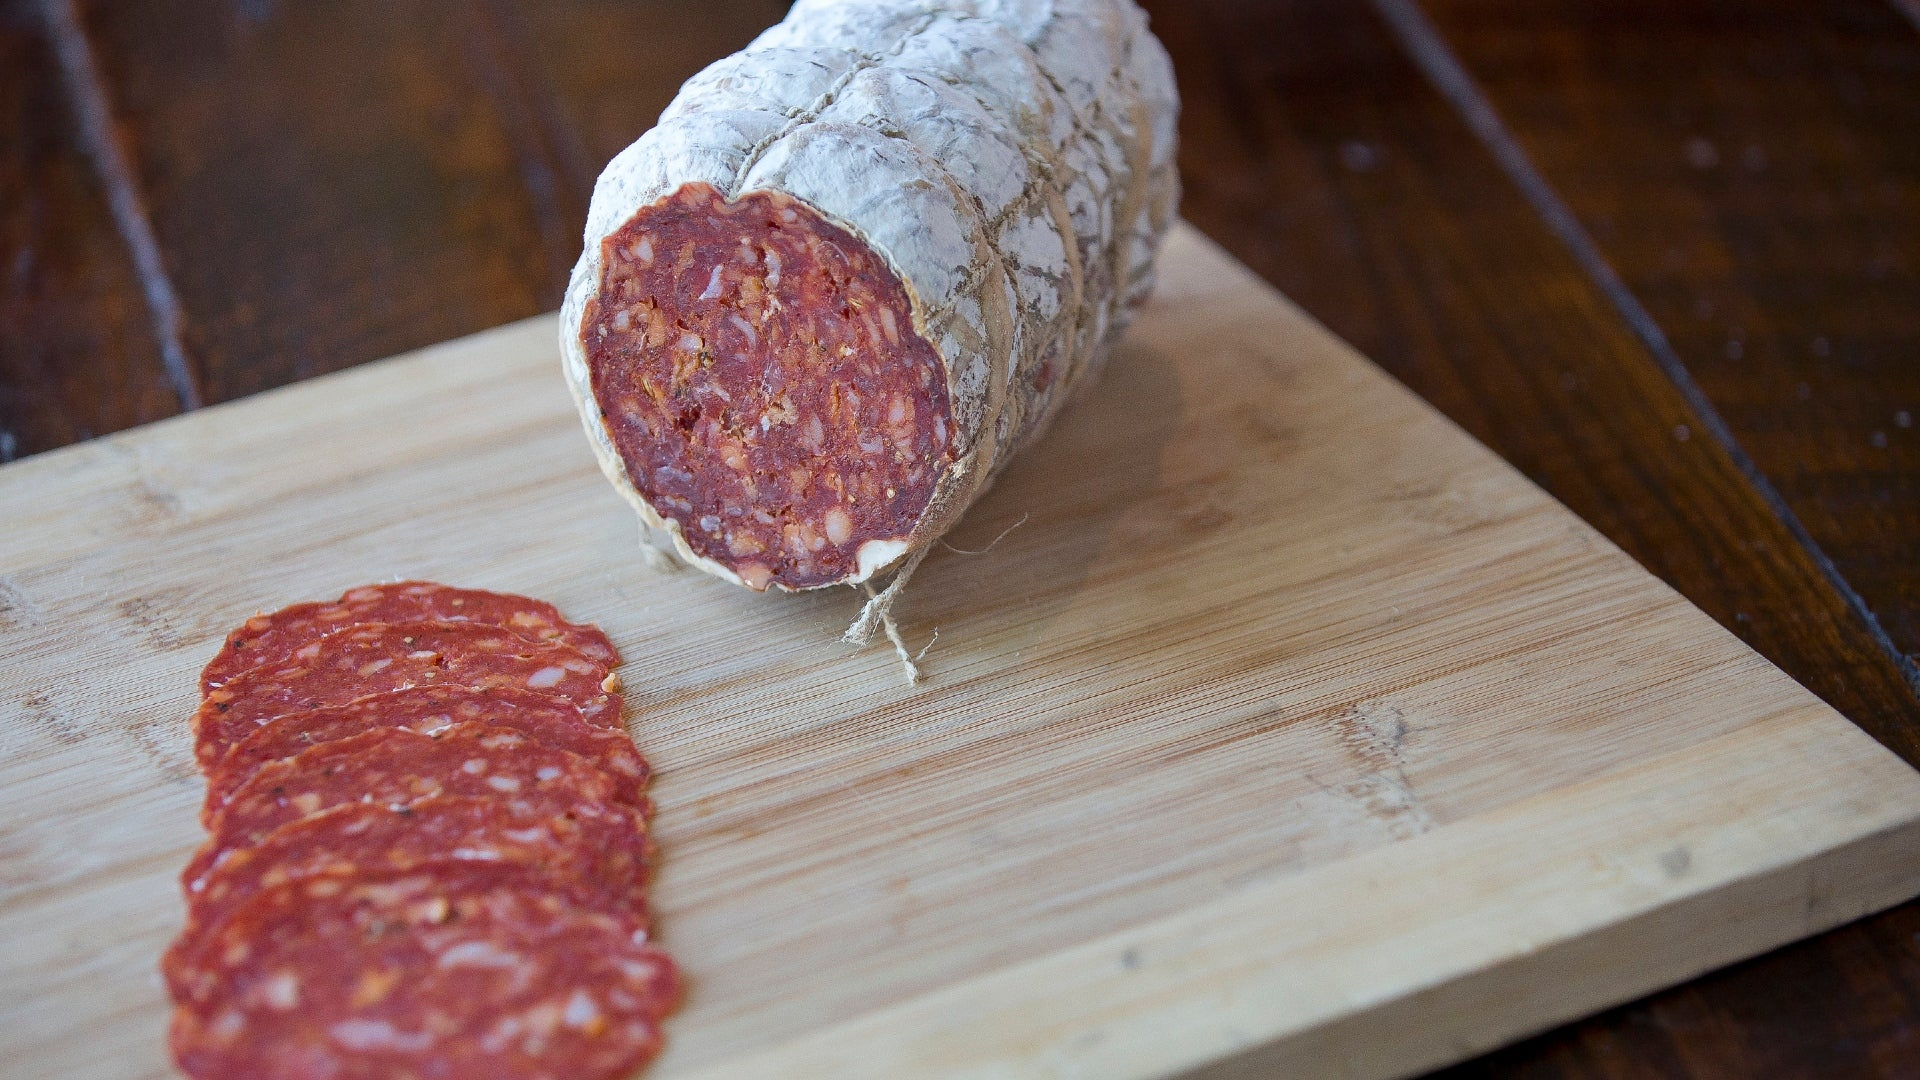 The cross section of a chub of Pepperoni salami on a cutting board with pepperoni slices in the foreground.